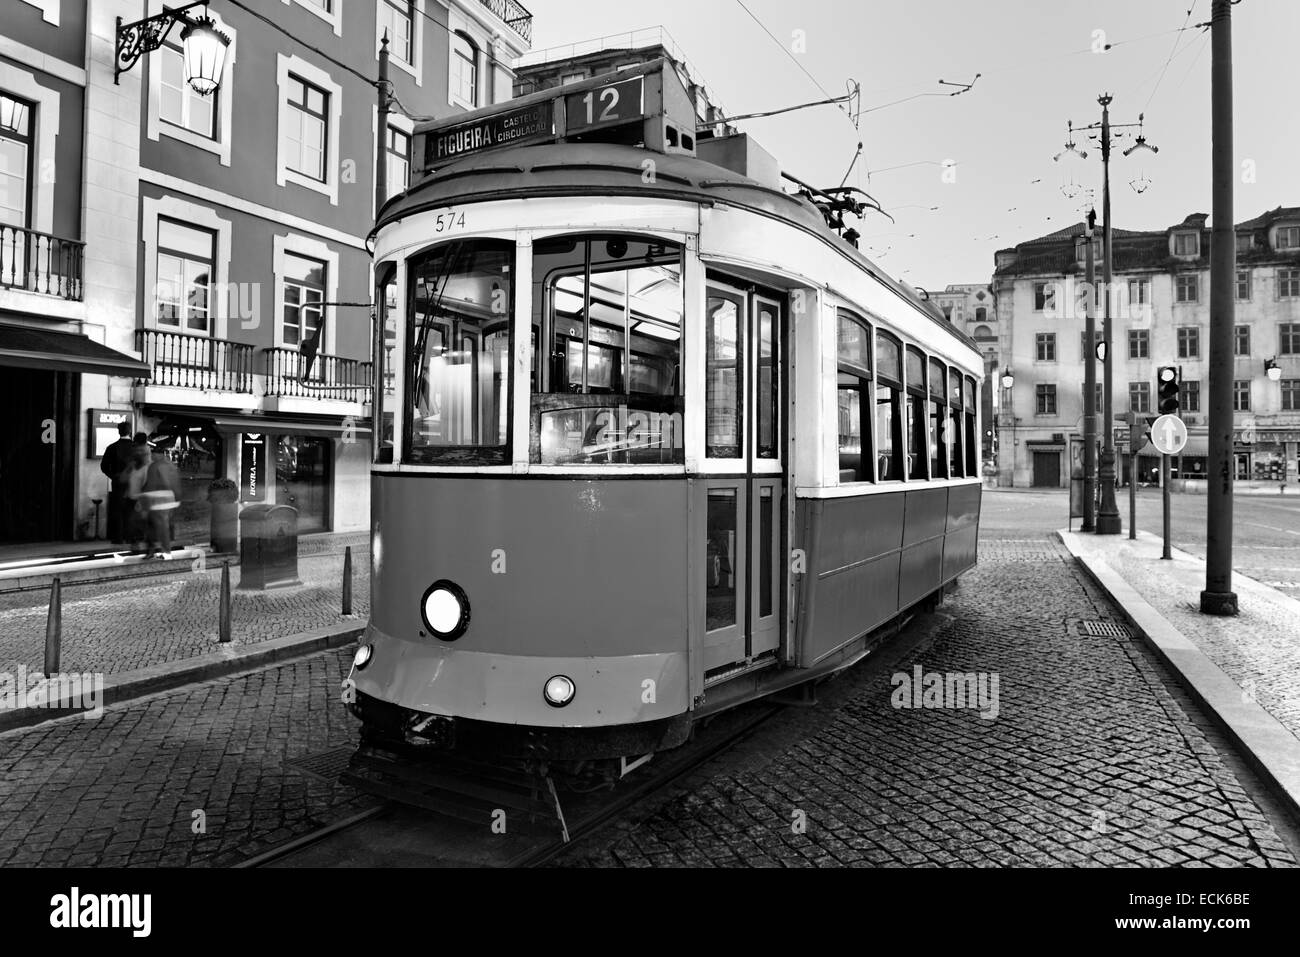 Portugal black and white stockfotos portugal black and - Fliesenmuster schwarz weiay ...